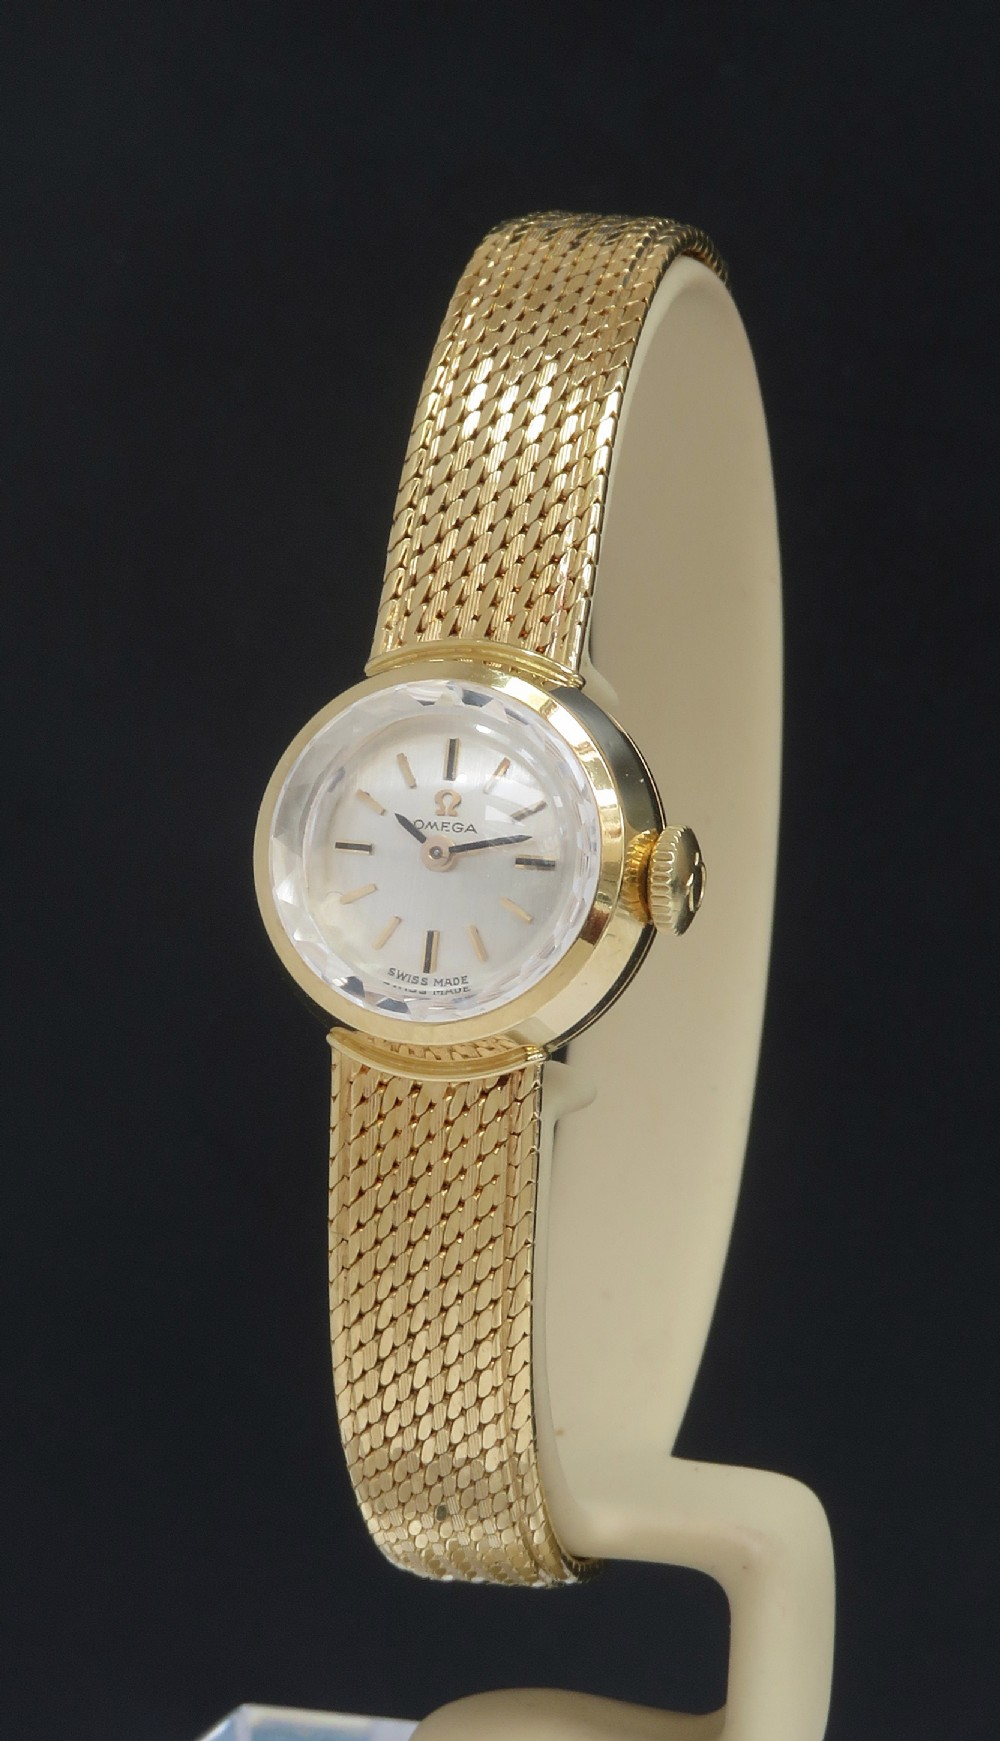 mint original condition solid 18ct gold omega sapphette ladies cocktail watch with box c1962